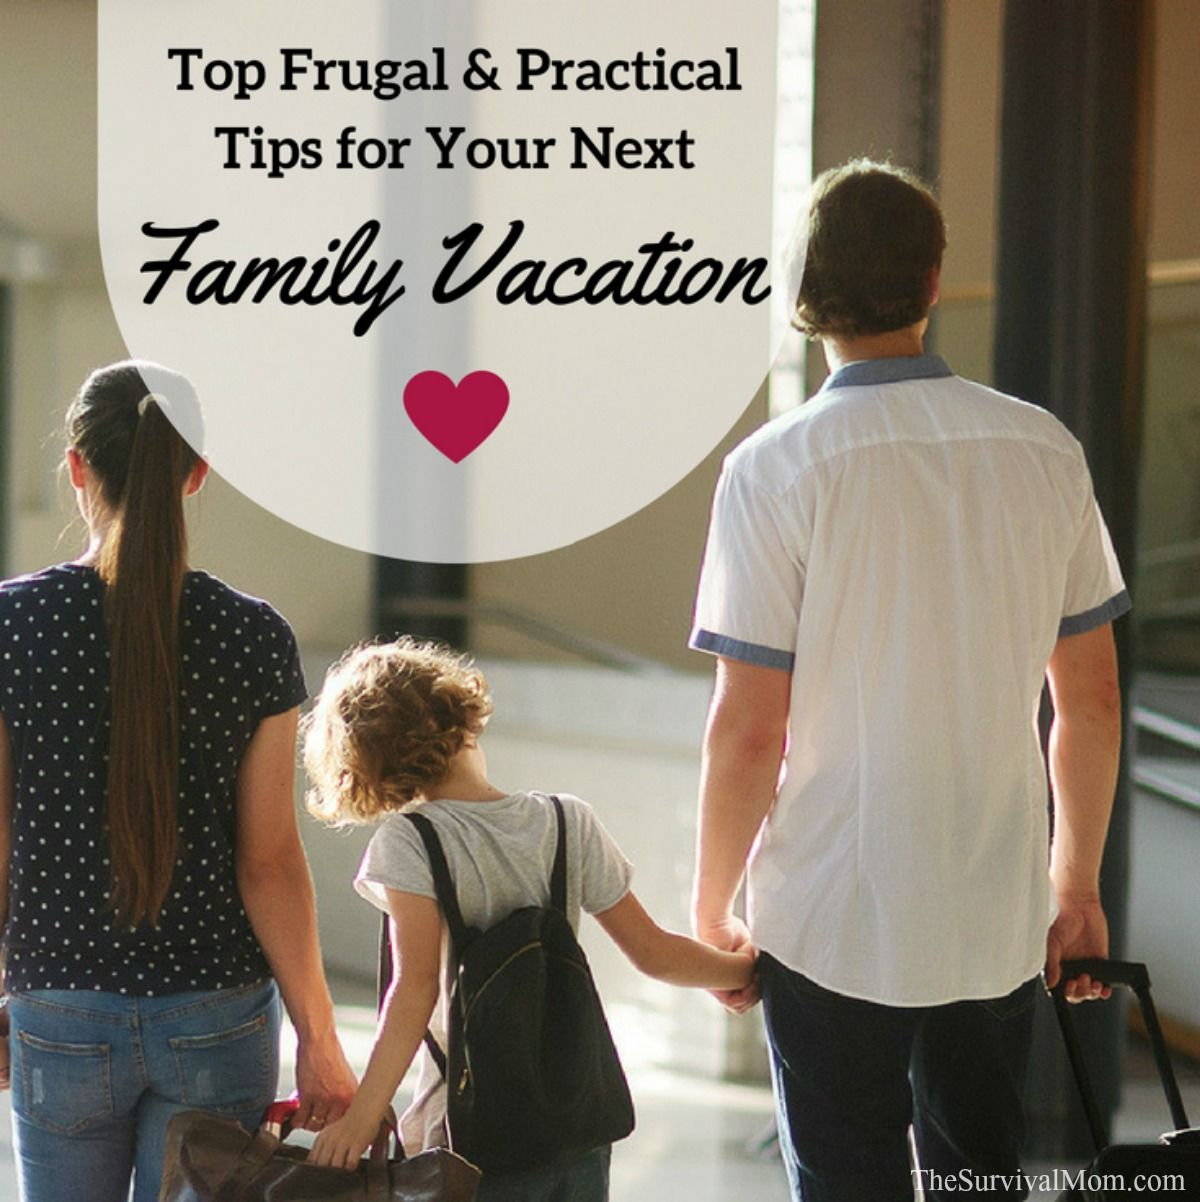 Top Frugal & Practical Tips for Your Next Family Vacation via The Survival Mom